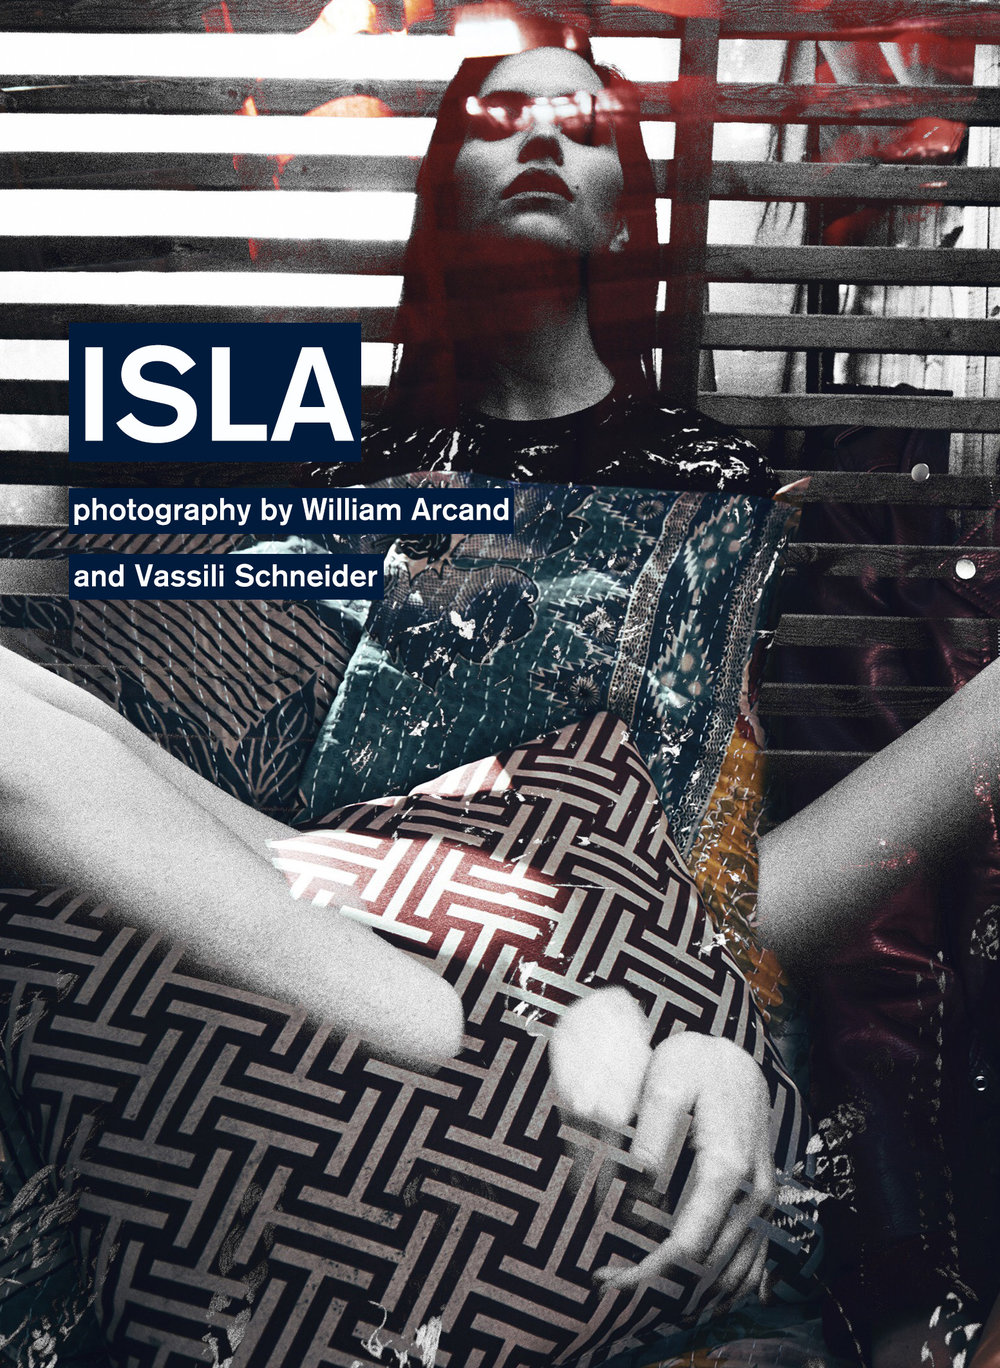 isla-william-arcand-vassili-schneider